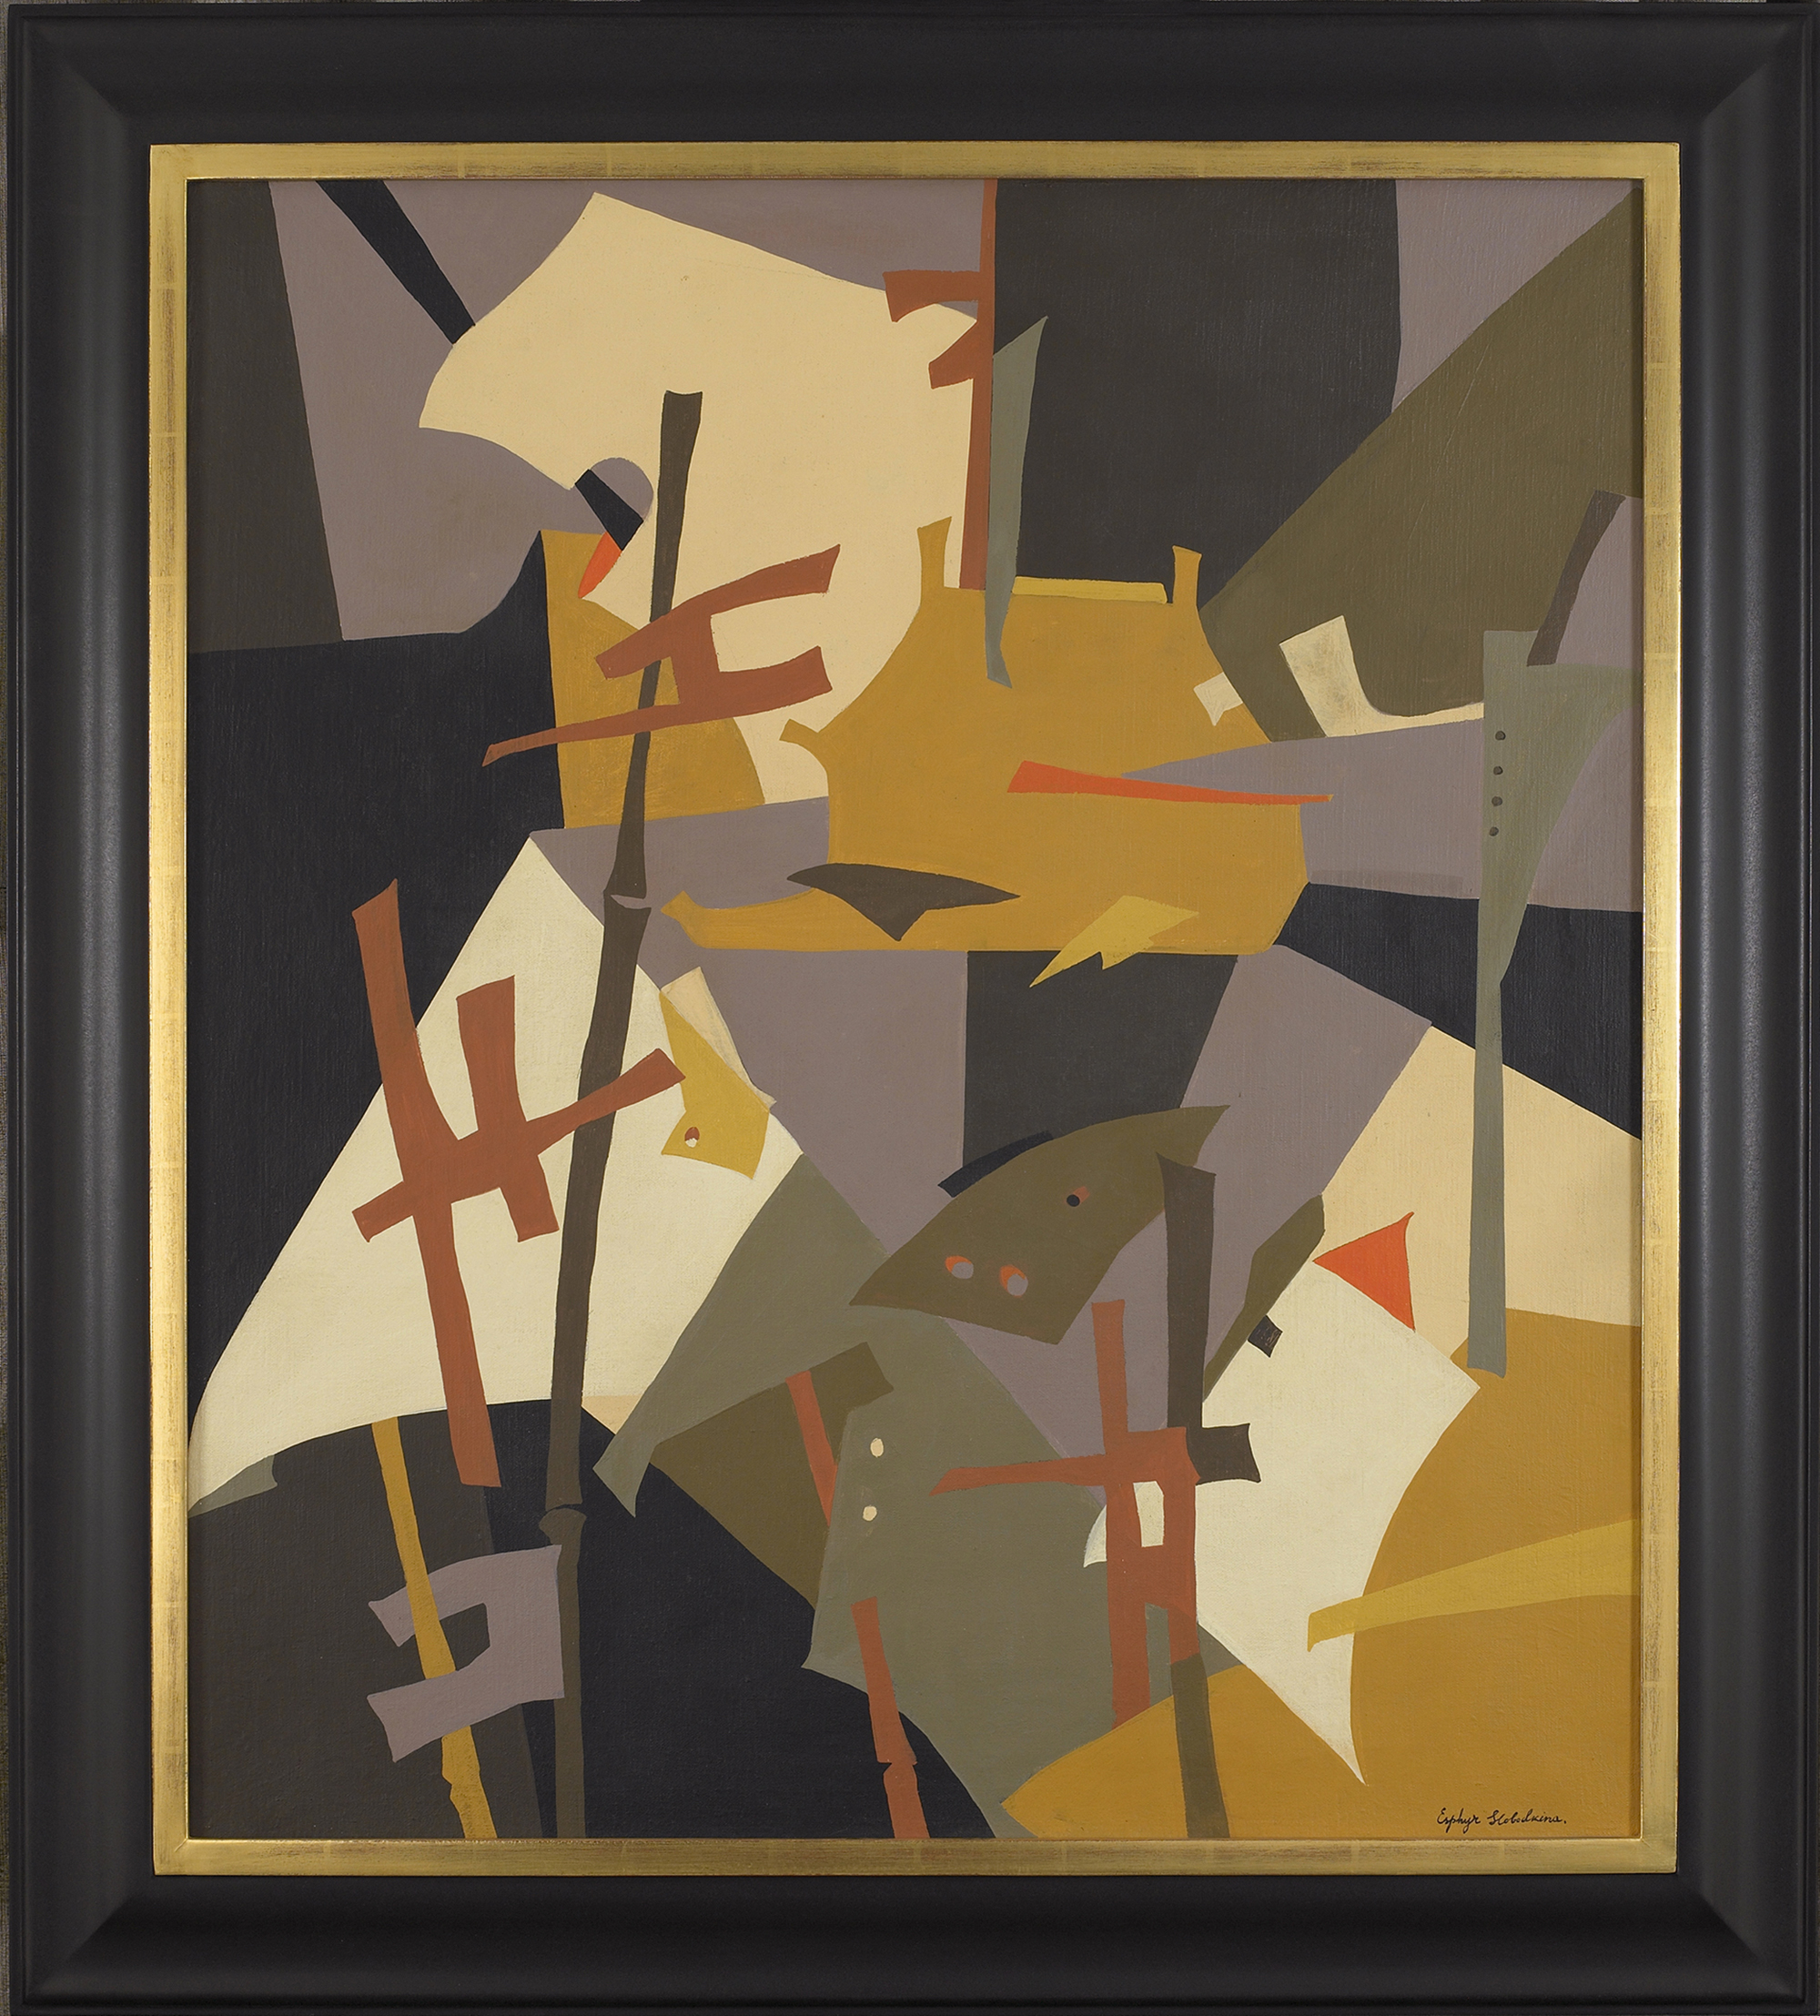 SOLD  Japanese Abstraction,   Oil on canvas, 1950s, 34 1/4 x 30 1/3 inches